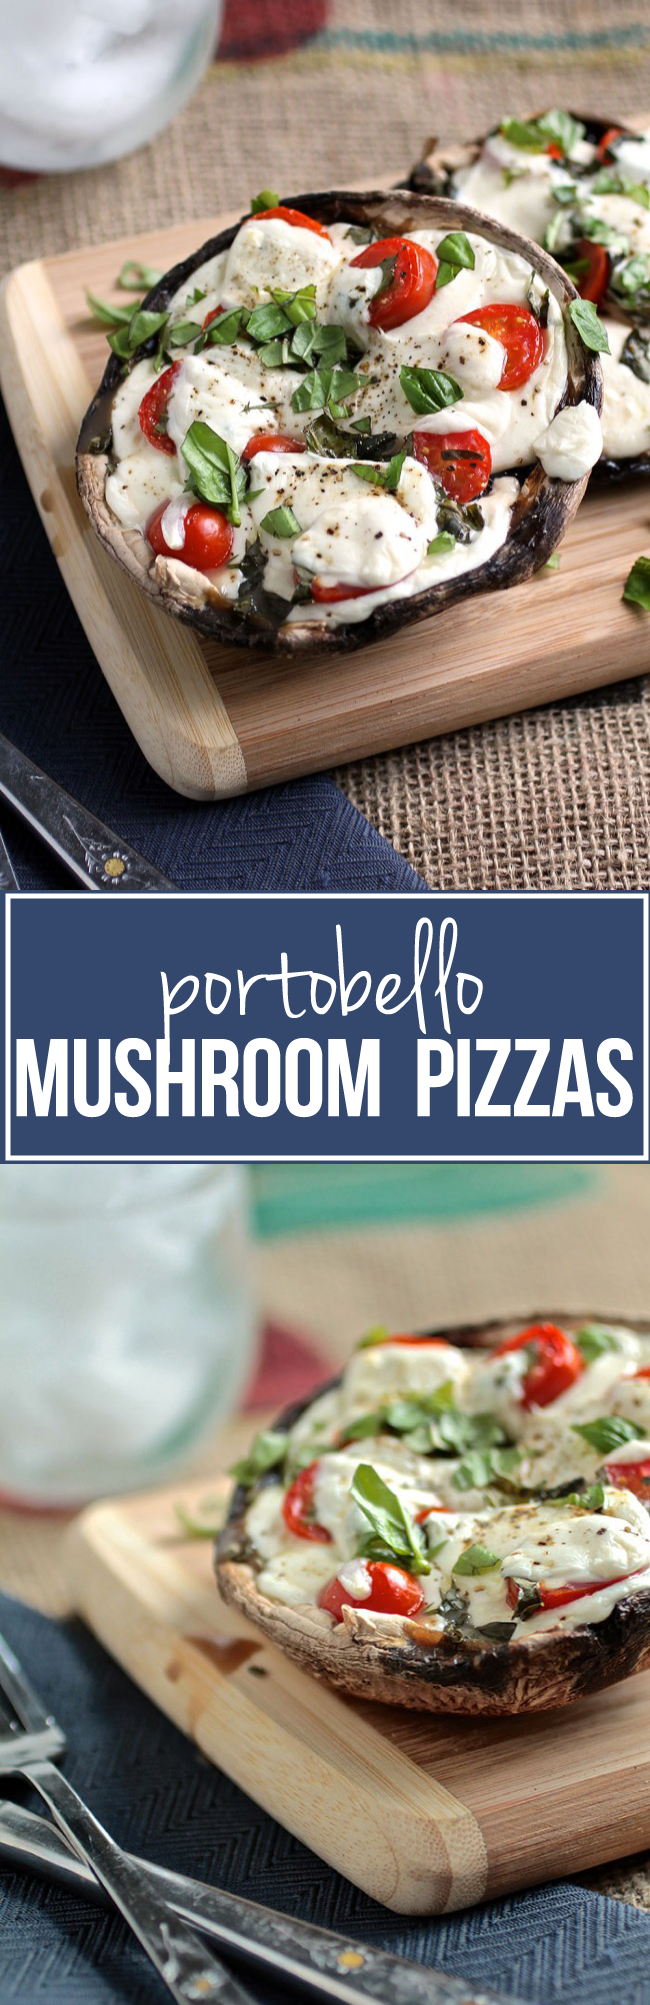 Portobello Mushroom Pizzas | This healthy pizza recipe is quick, easy, and lets you enjoy your favorite pizza toppings without the guilt! Vegetarian, ready in 30 minutes.